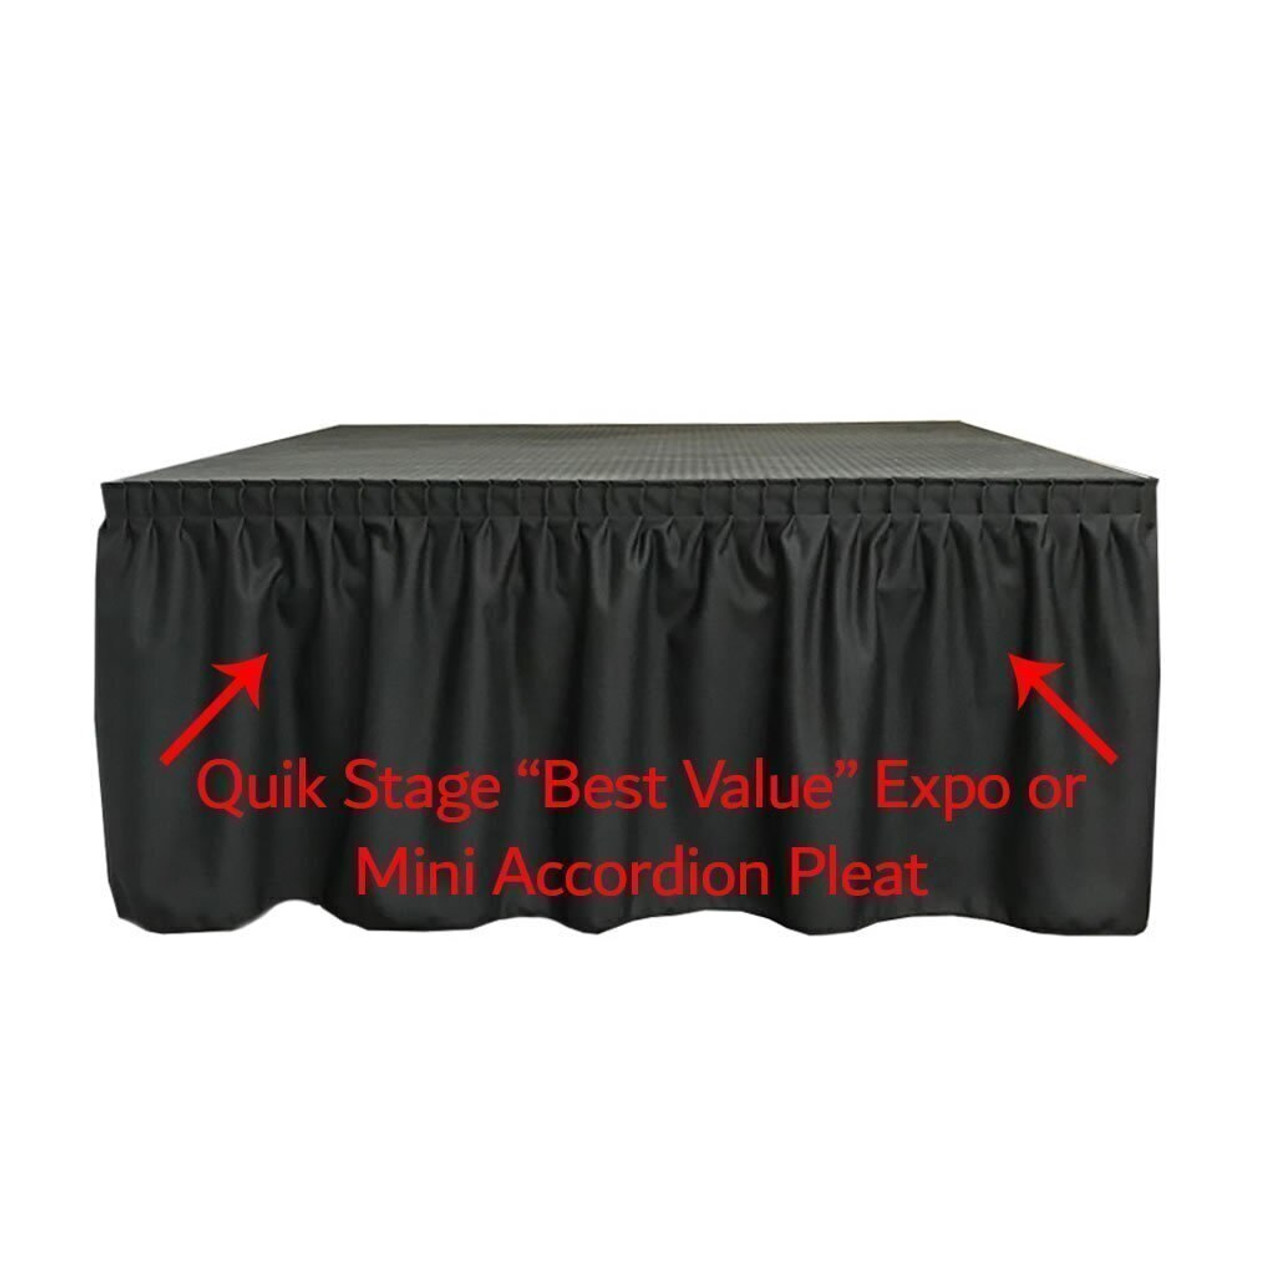 High Quality Quik Stage 4' x 24' High Portable Stage Package with Black Polyvinyl Non-Skid Surface. Additional Heights and Surfaces Available - Best Value Expo Pleat Stage Skirting